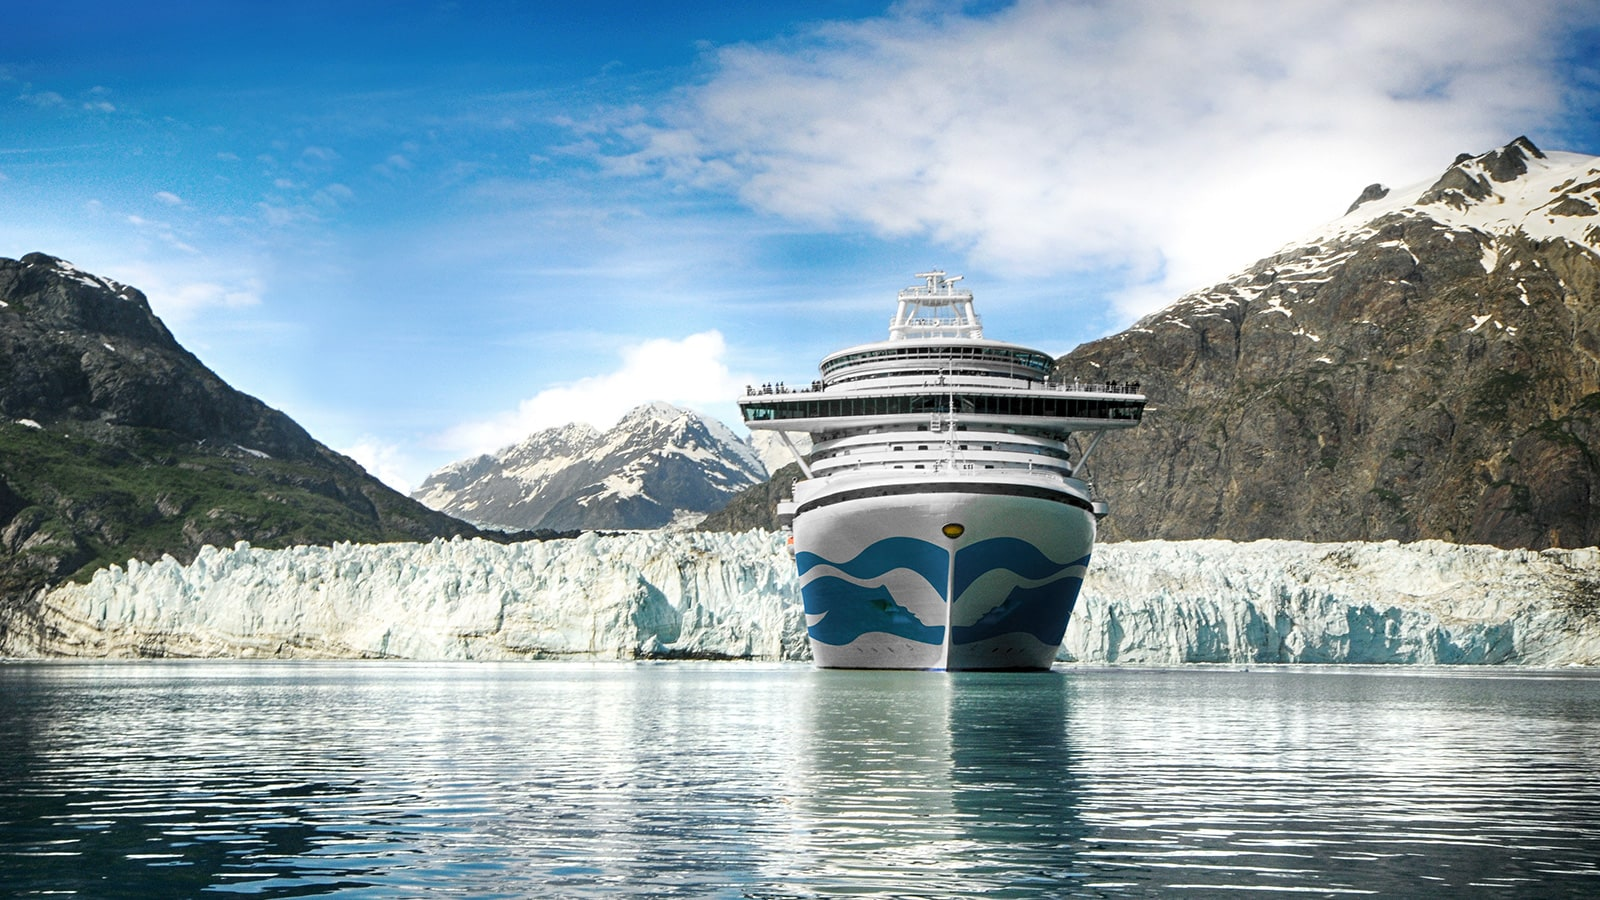 cruise ship on Alaska cruise with Margerie Glacier in the background